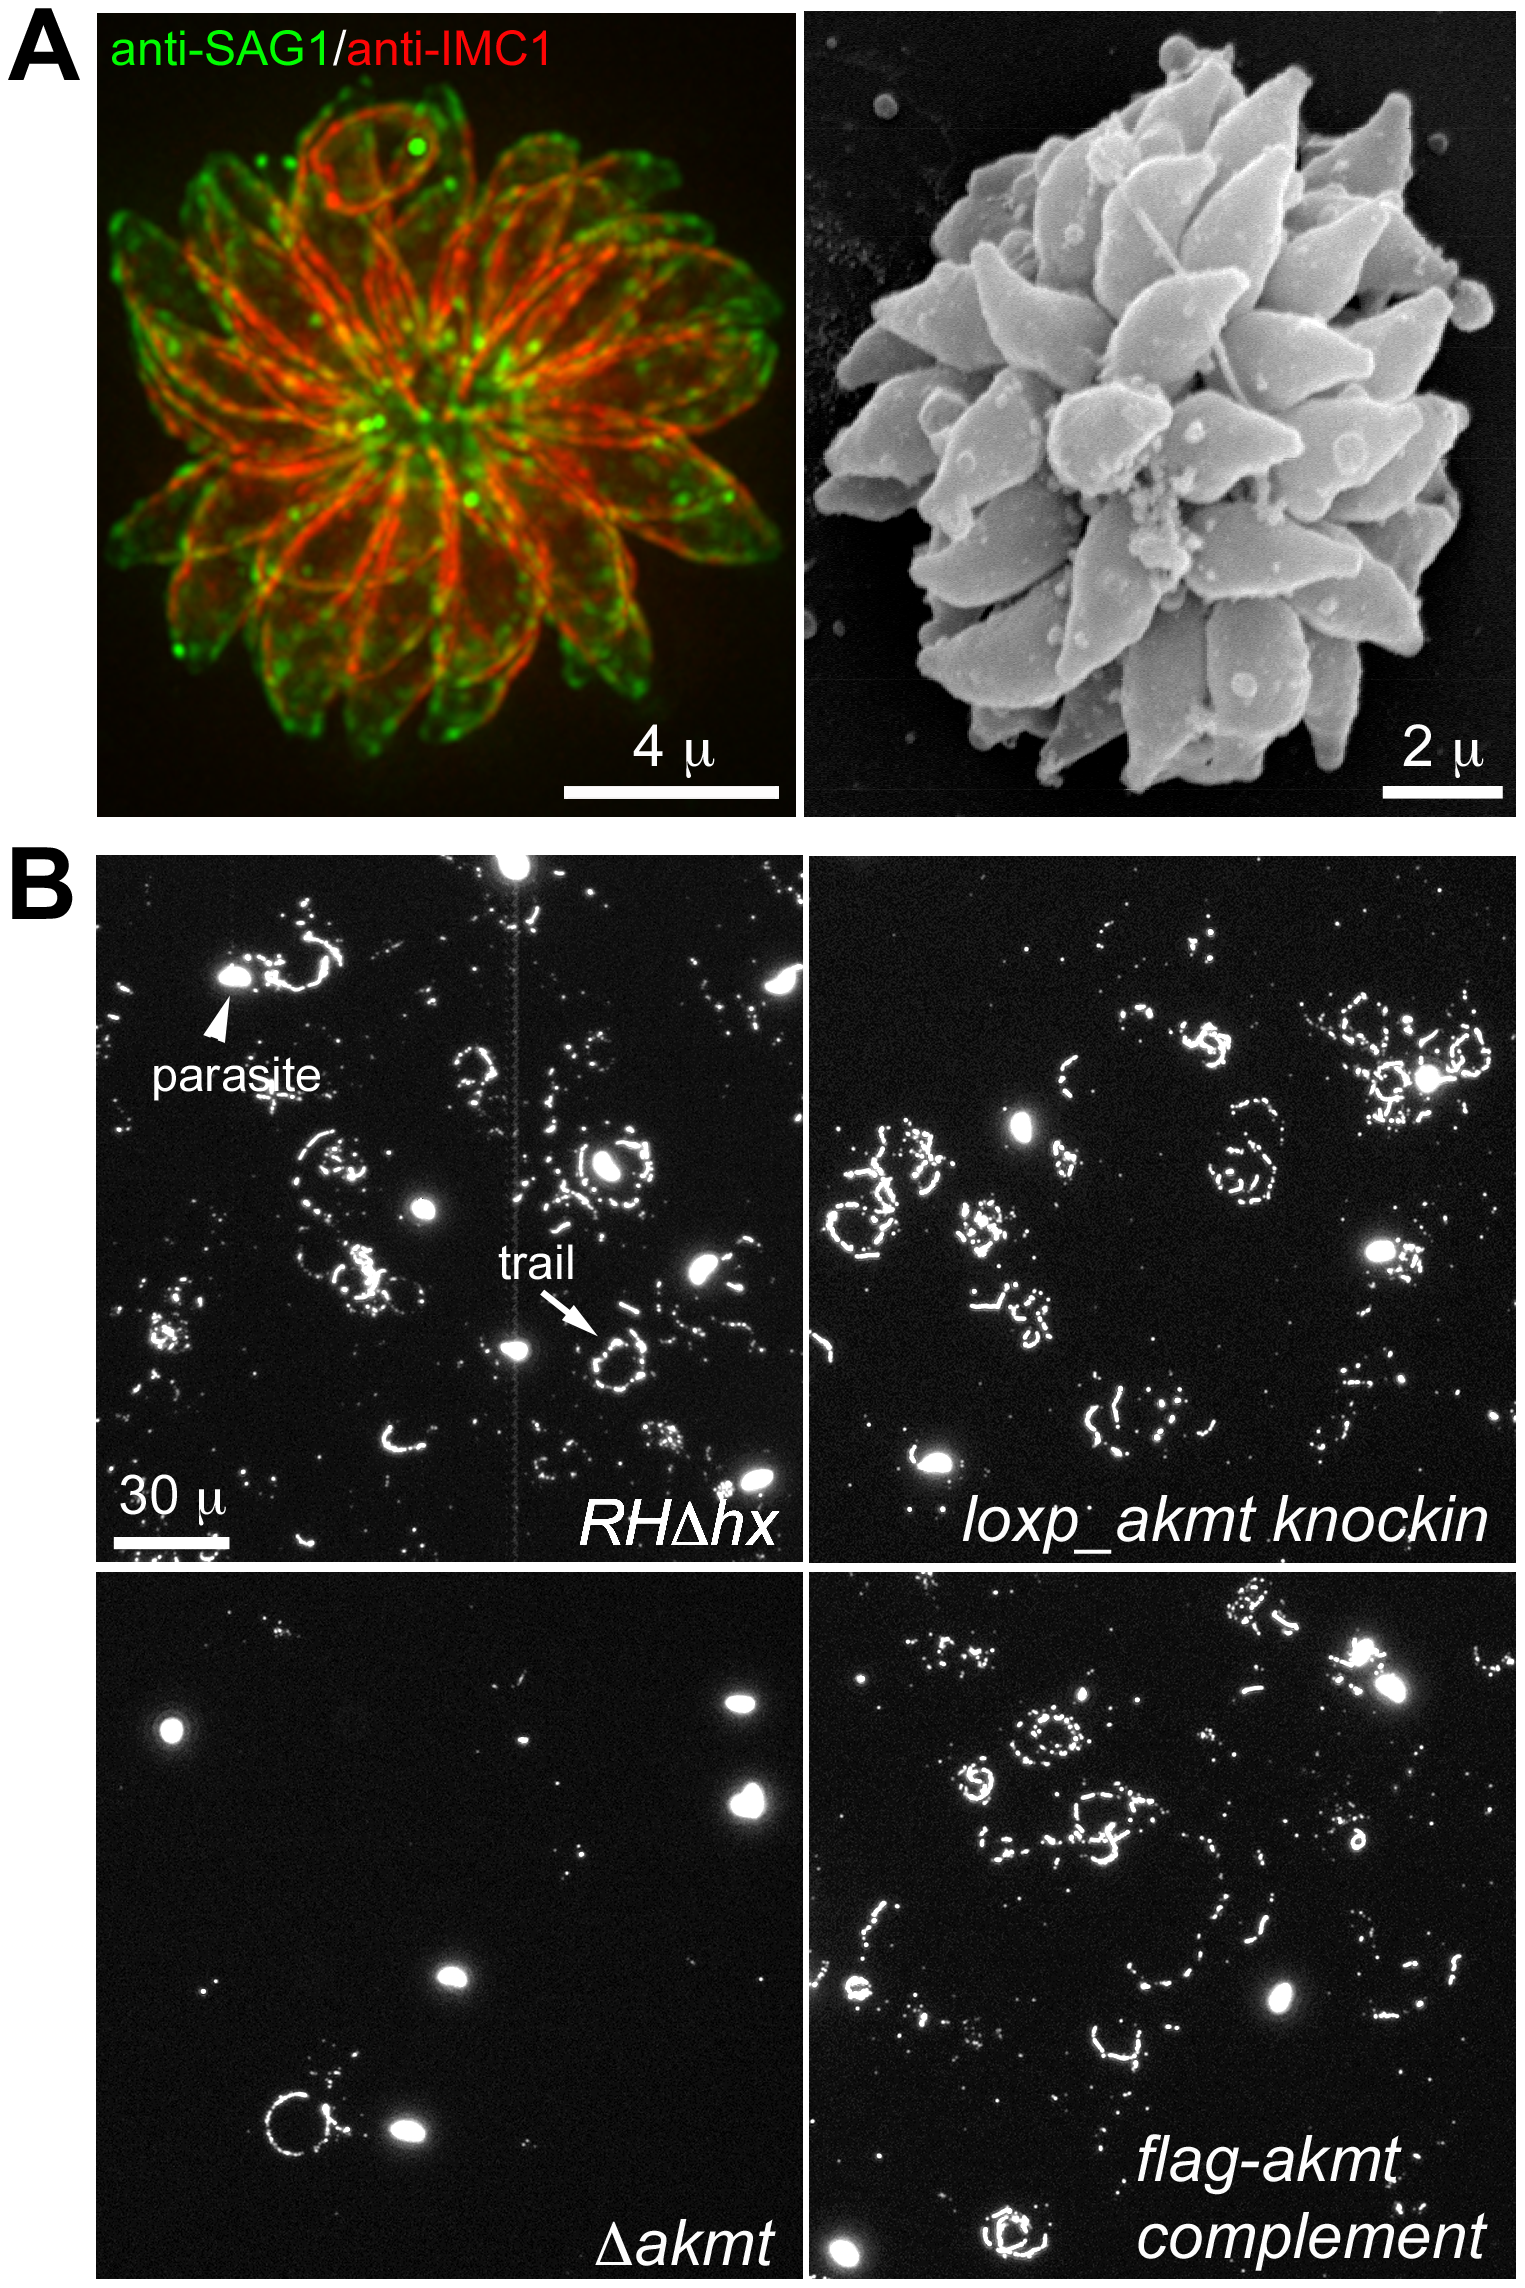 The motility of <i>Δakmt</i> parasites is impaired.